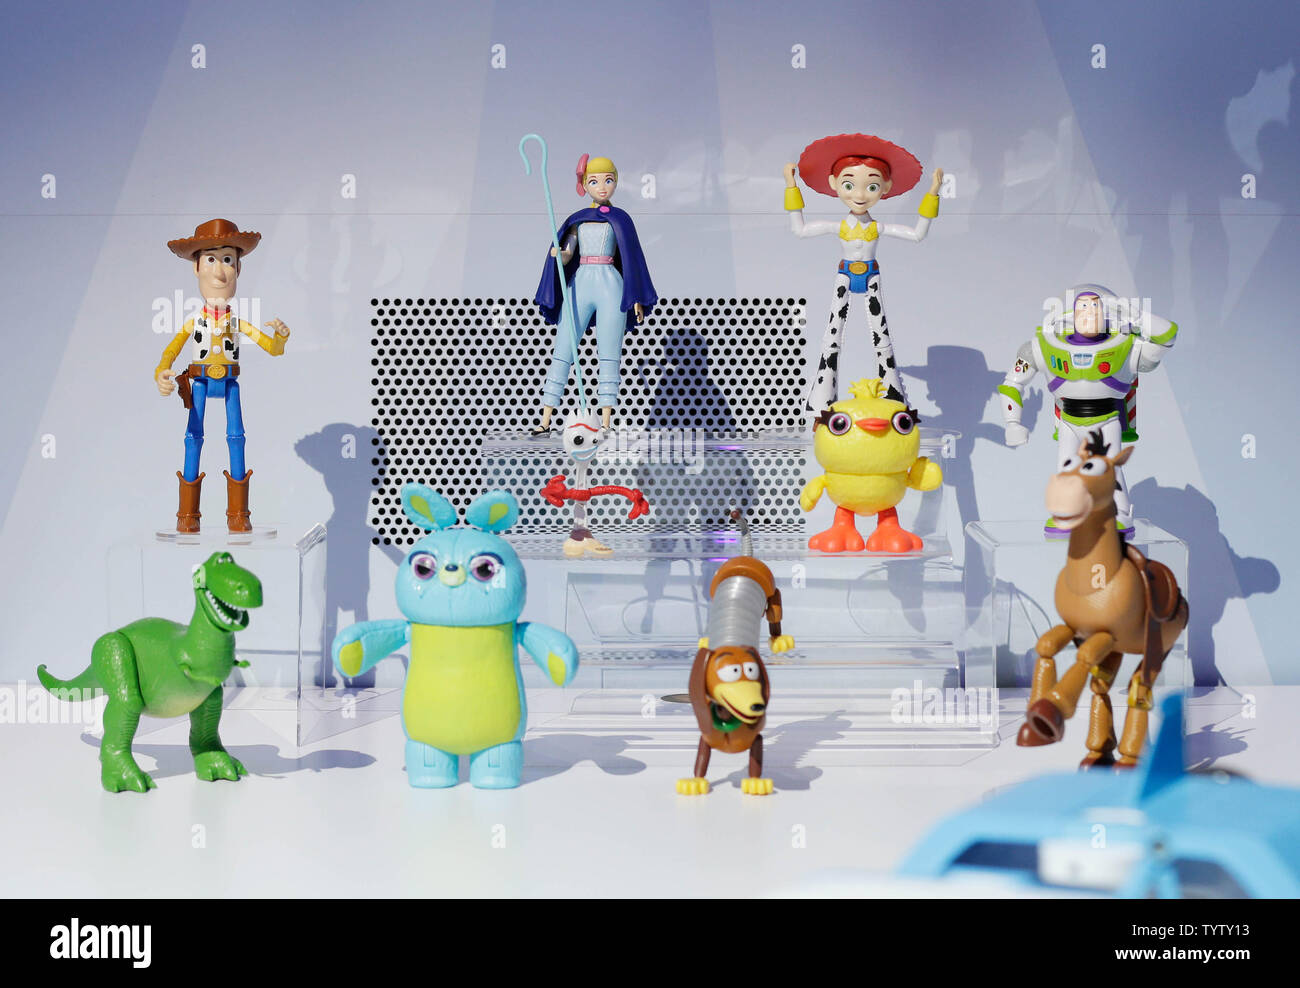 Toy Story 4 action figures from Mattel are on display at the at 116th American International Toy Fair at the Jacob K. Javits Convention Center in New York City on February 16, 2019. This is largest toy and youth product marketplace in the Western Hemisphere, bringing together more than 1,000 exhibiting manufacturers, distributors, importers and sales agents from around the globe to showcase their toy and entertainment products.       Photo by John Angelillo/UPI - Stock Image